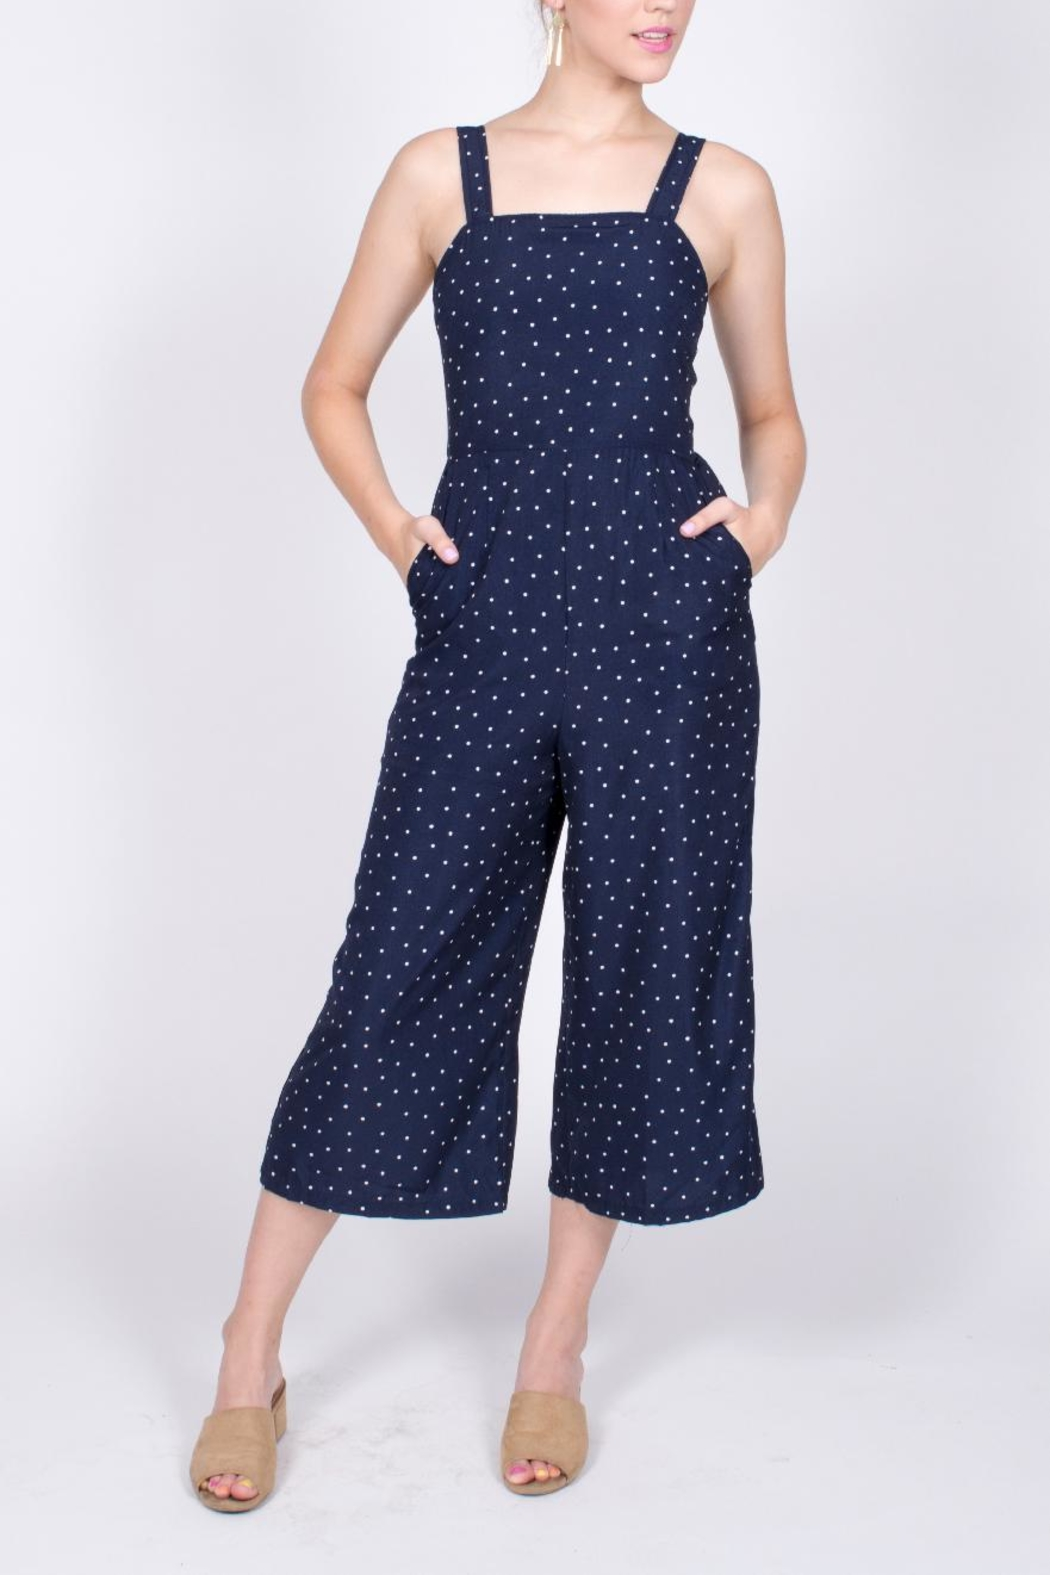 Very J Polka Dot Jumpsuit - Front Cropped Image